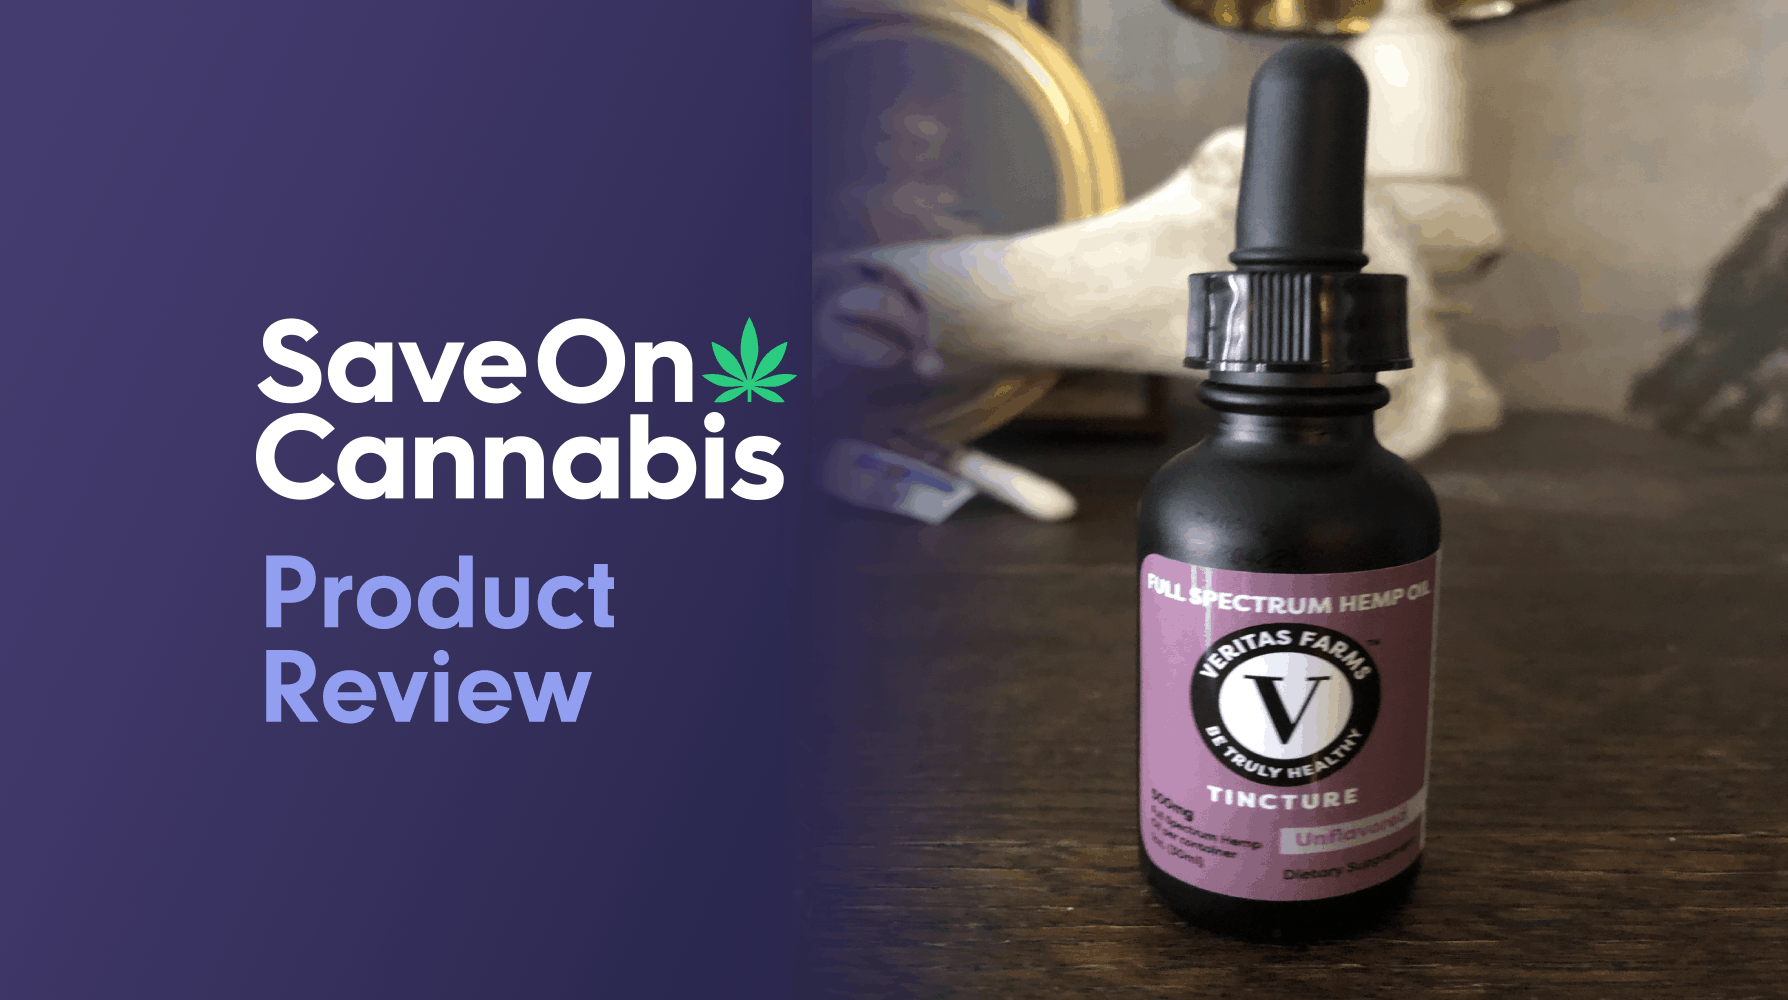 veritas farms 500 mg unflavored full spectrum cbd tincture review save on cannabis website